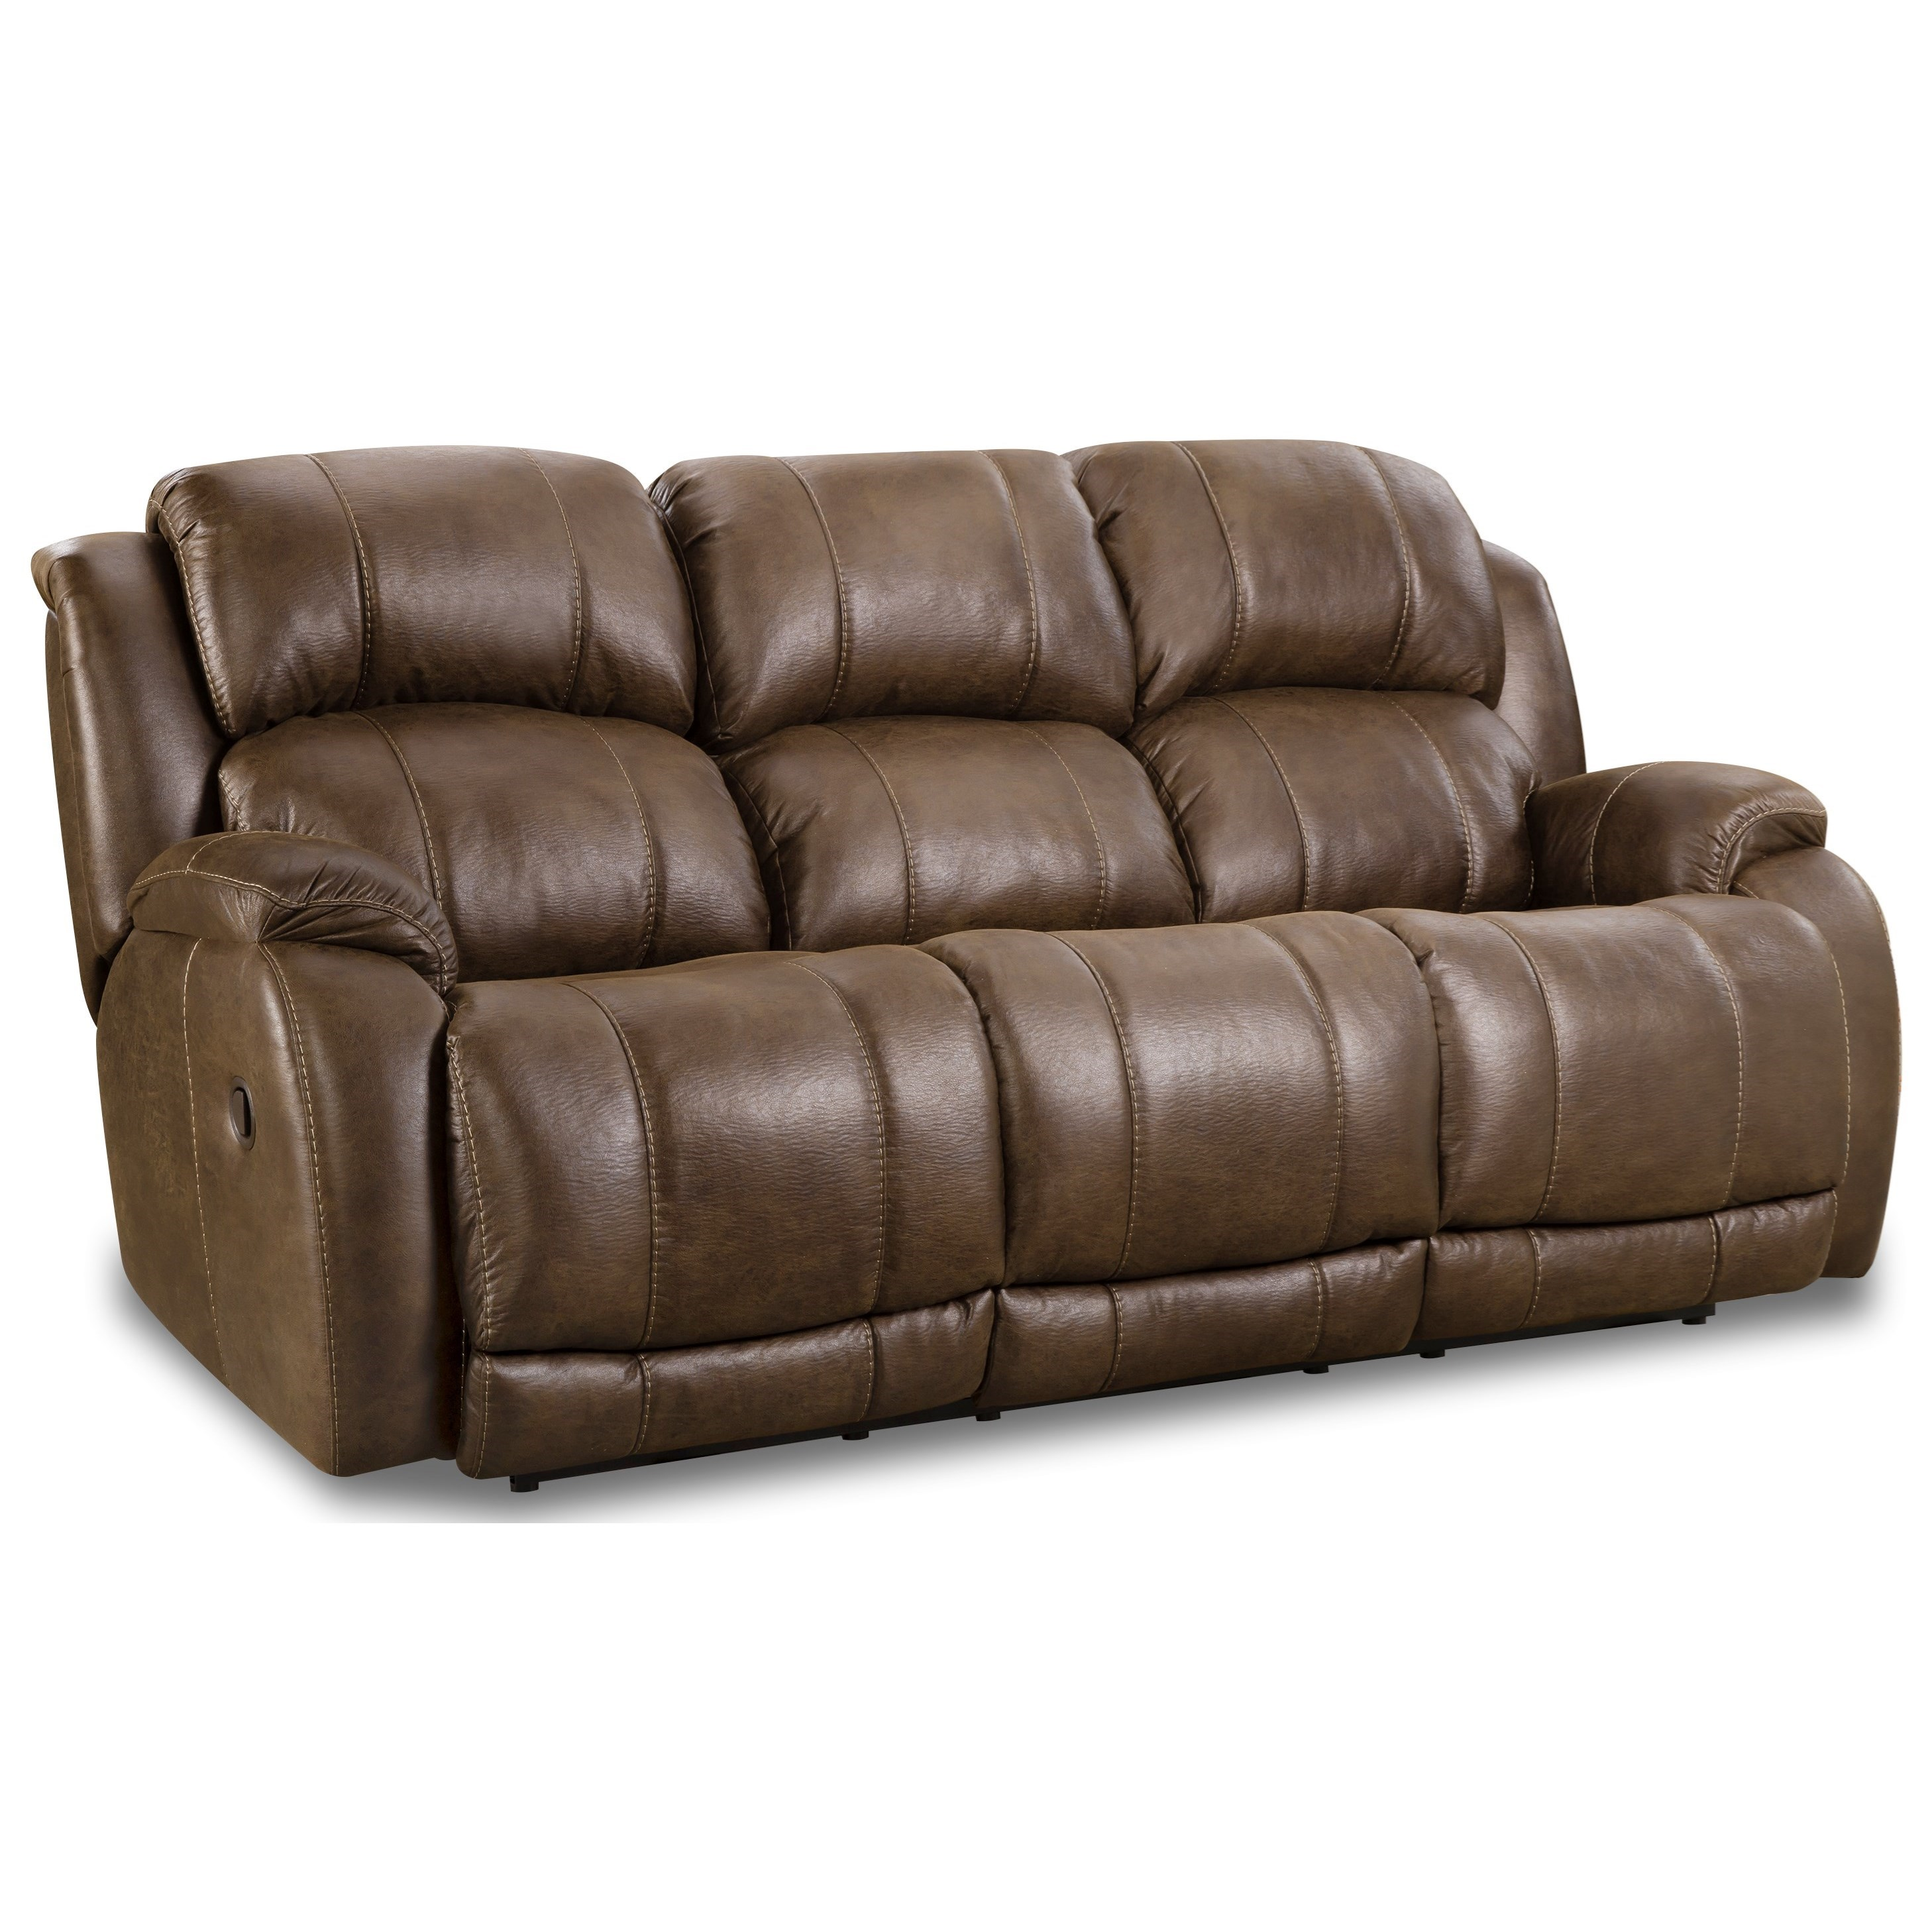 Denali Dual Reclining Sofa by HomeStretch at Van Hill Furniture